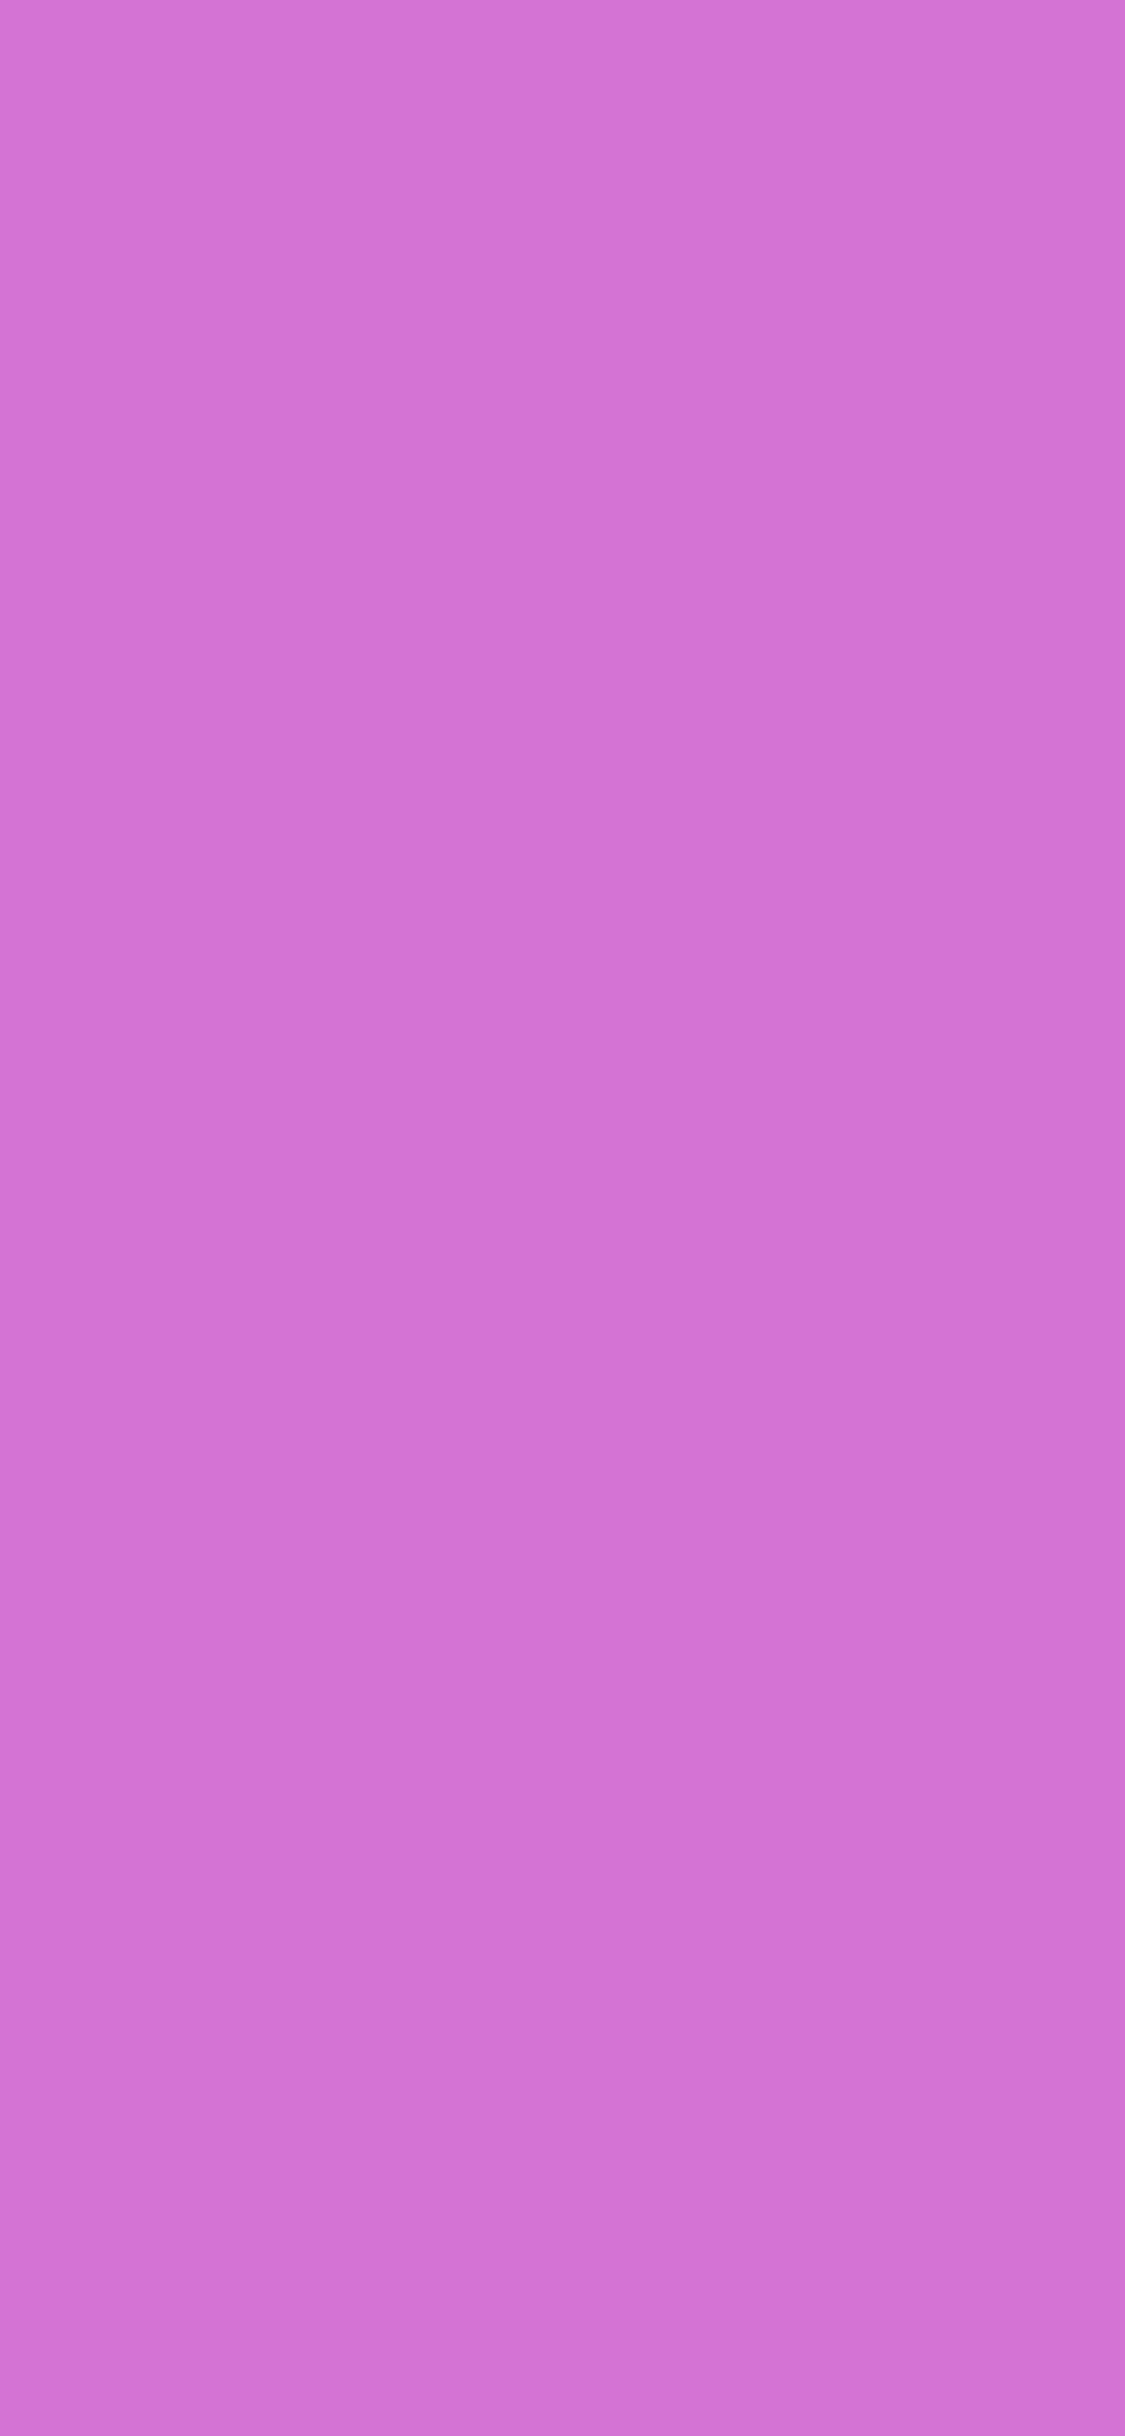 1125x2436 French Mauve Solid Color Background